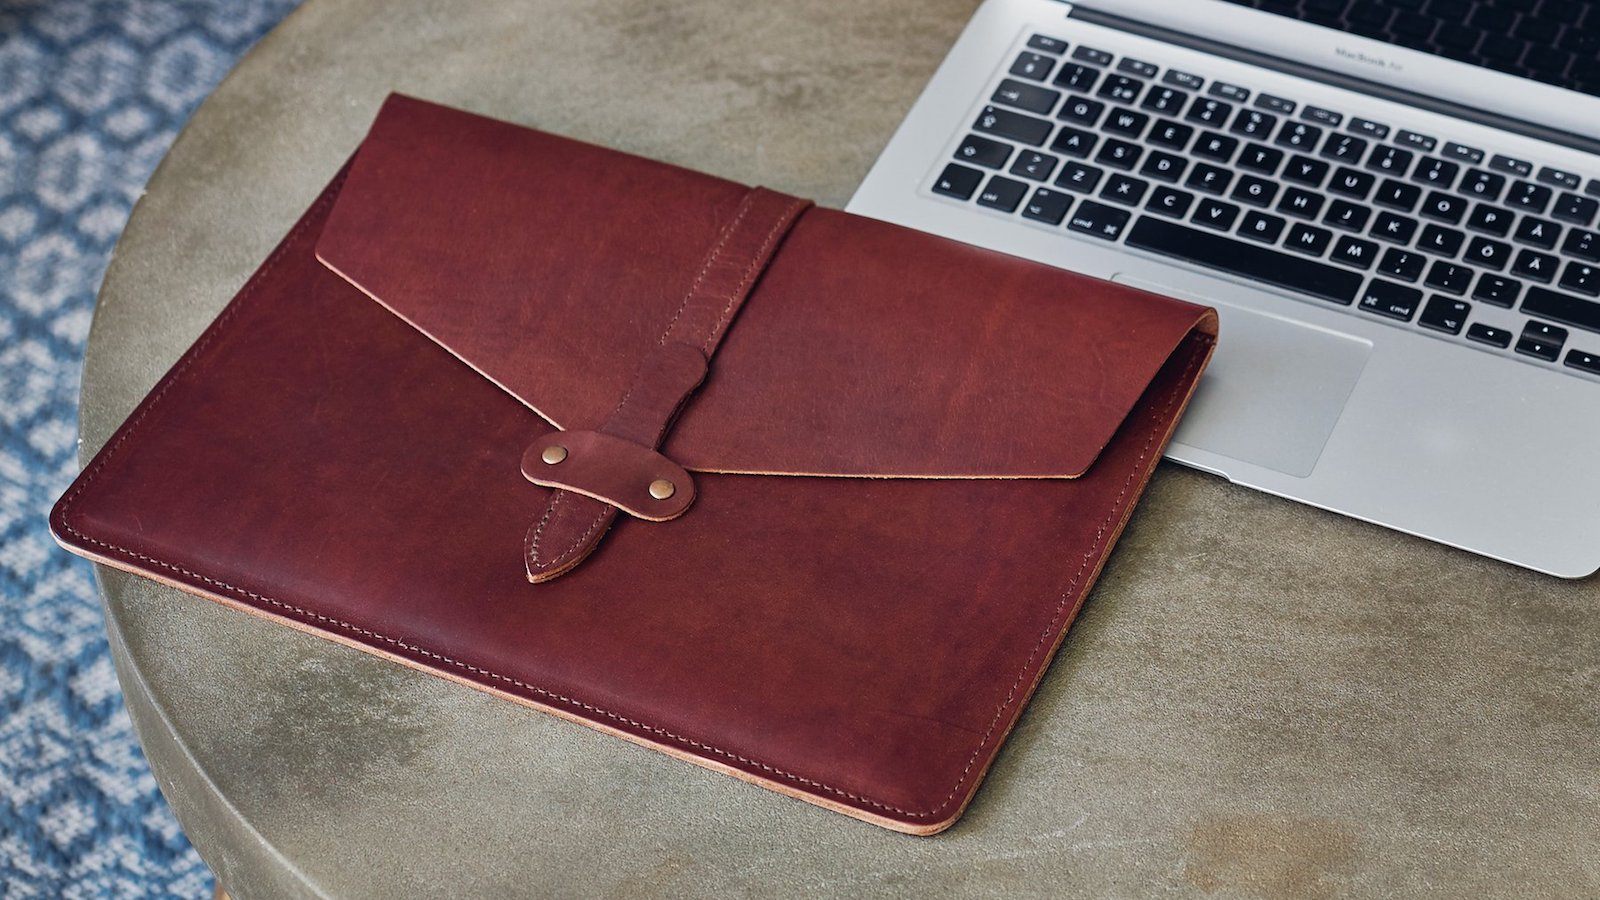 Kasperi Leather Secure Laptop Sleeve comfortably fits a laptop up to 13 inches